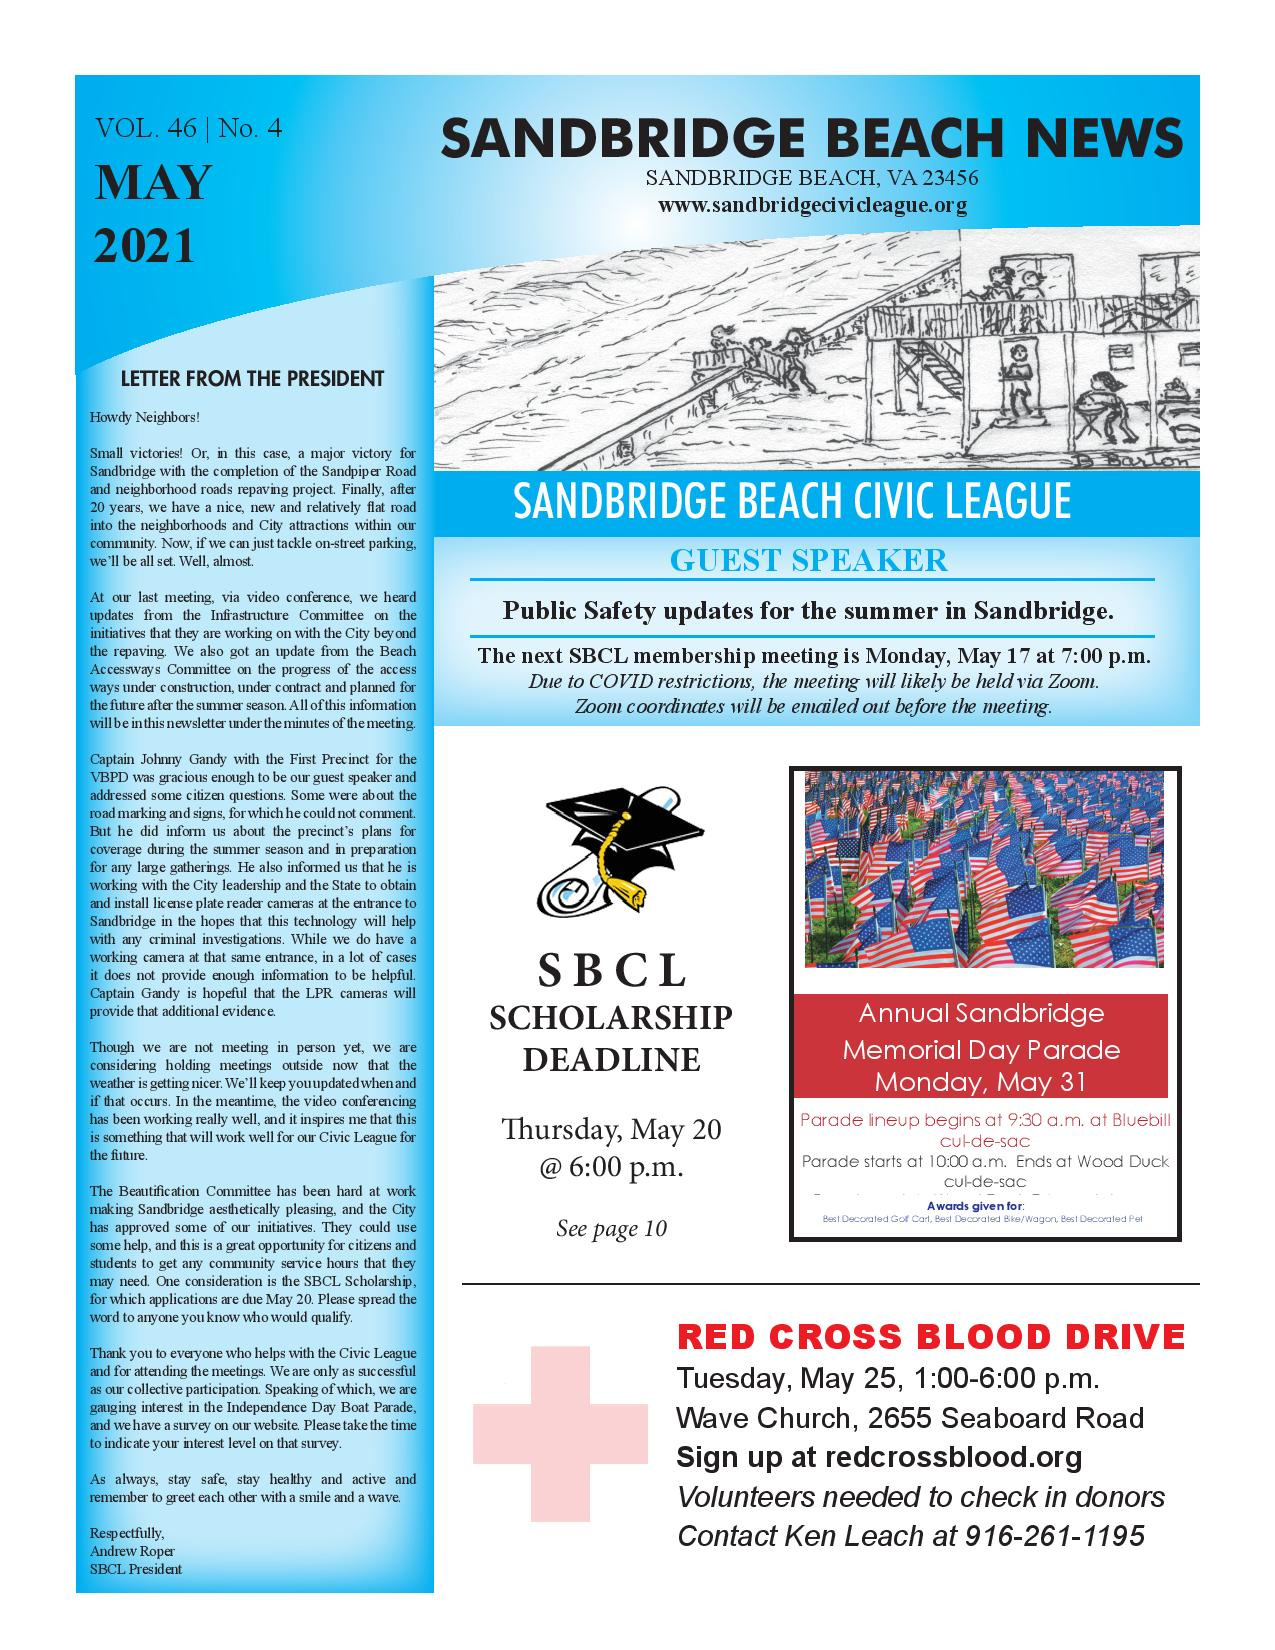 SBCL Newsletter May 2021